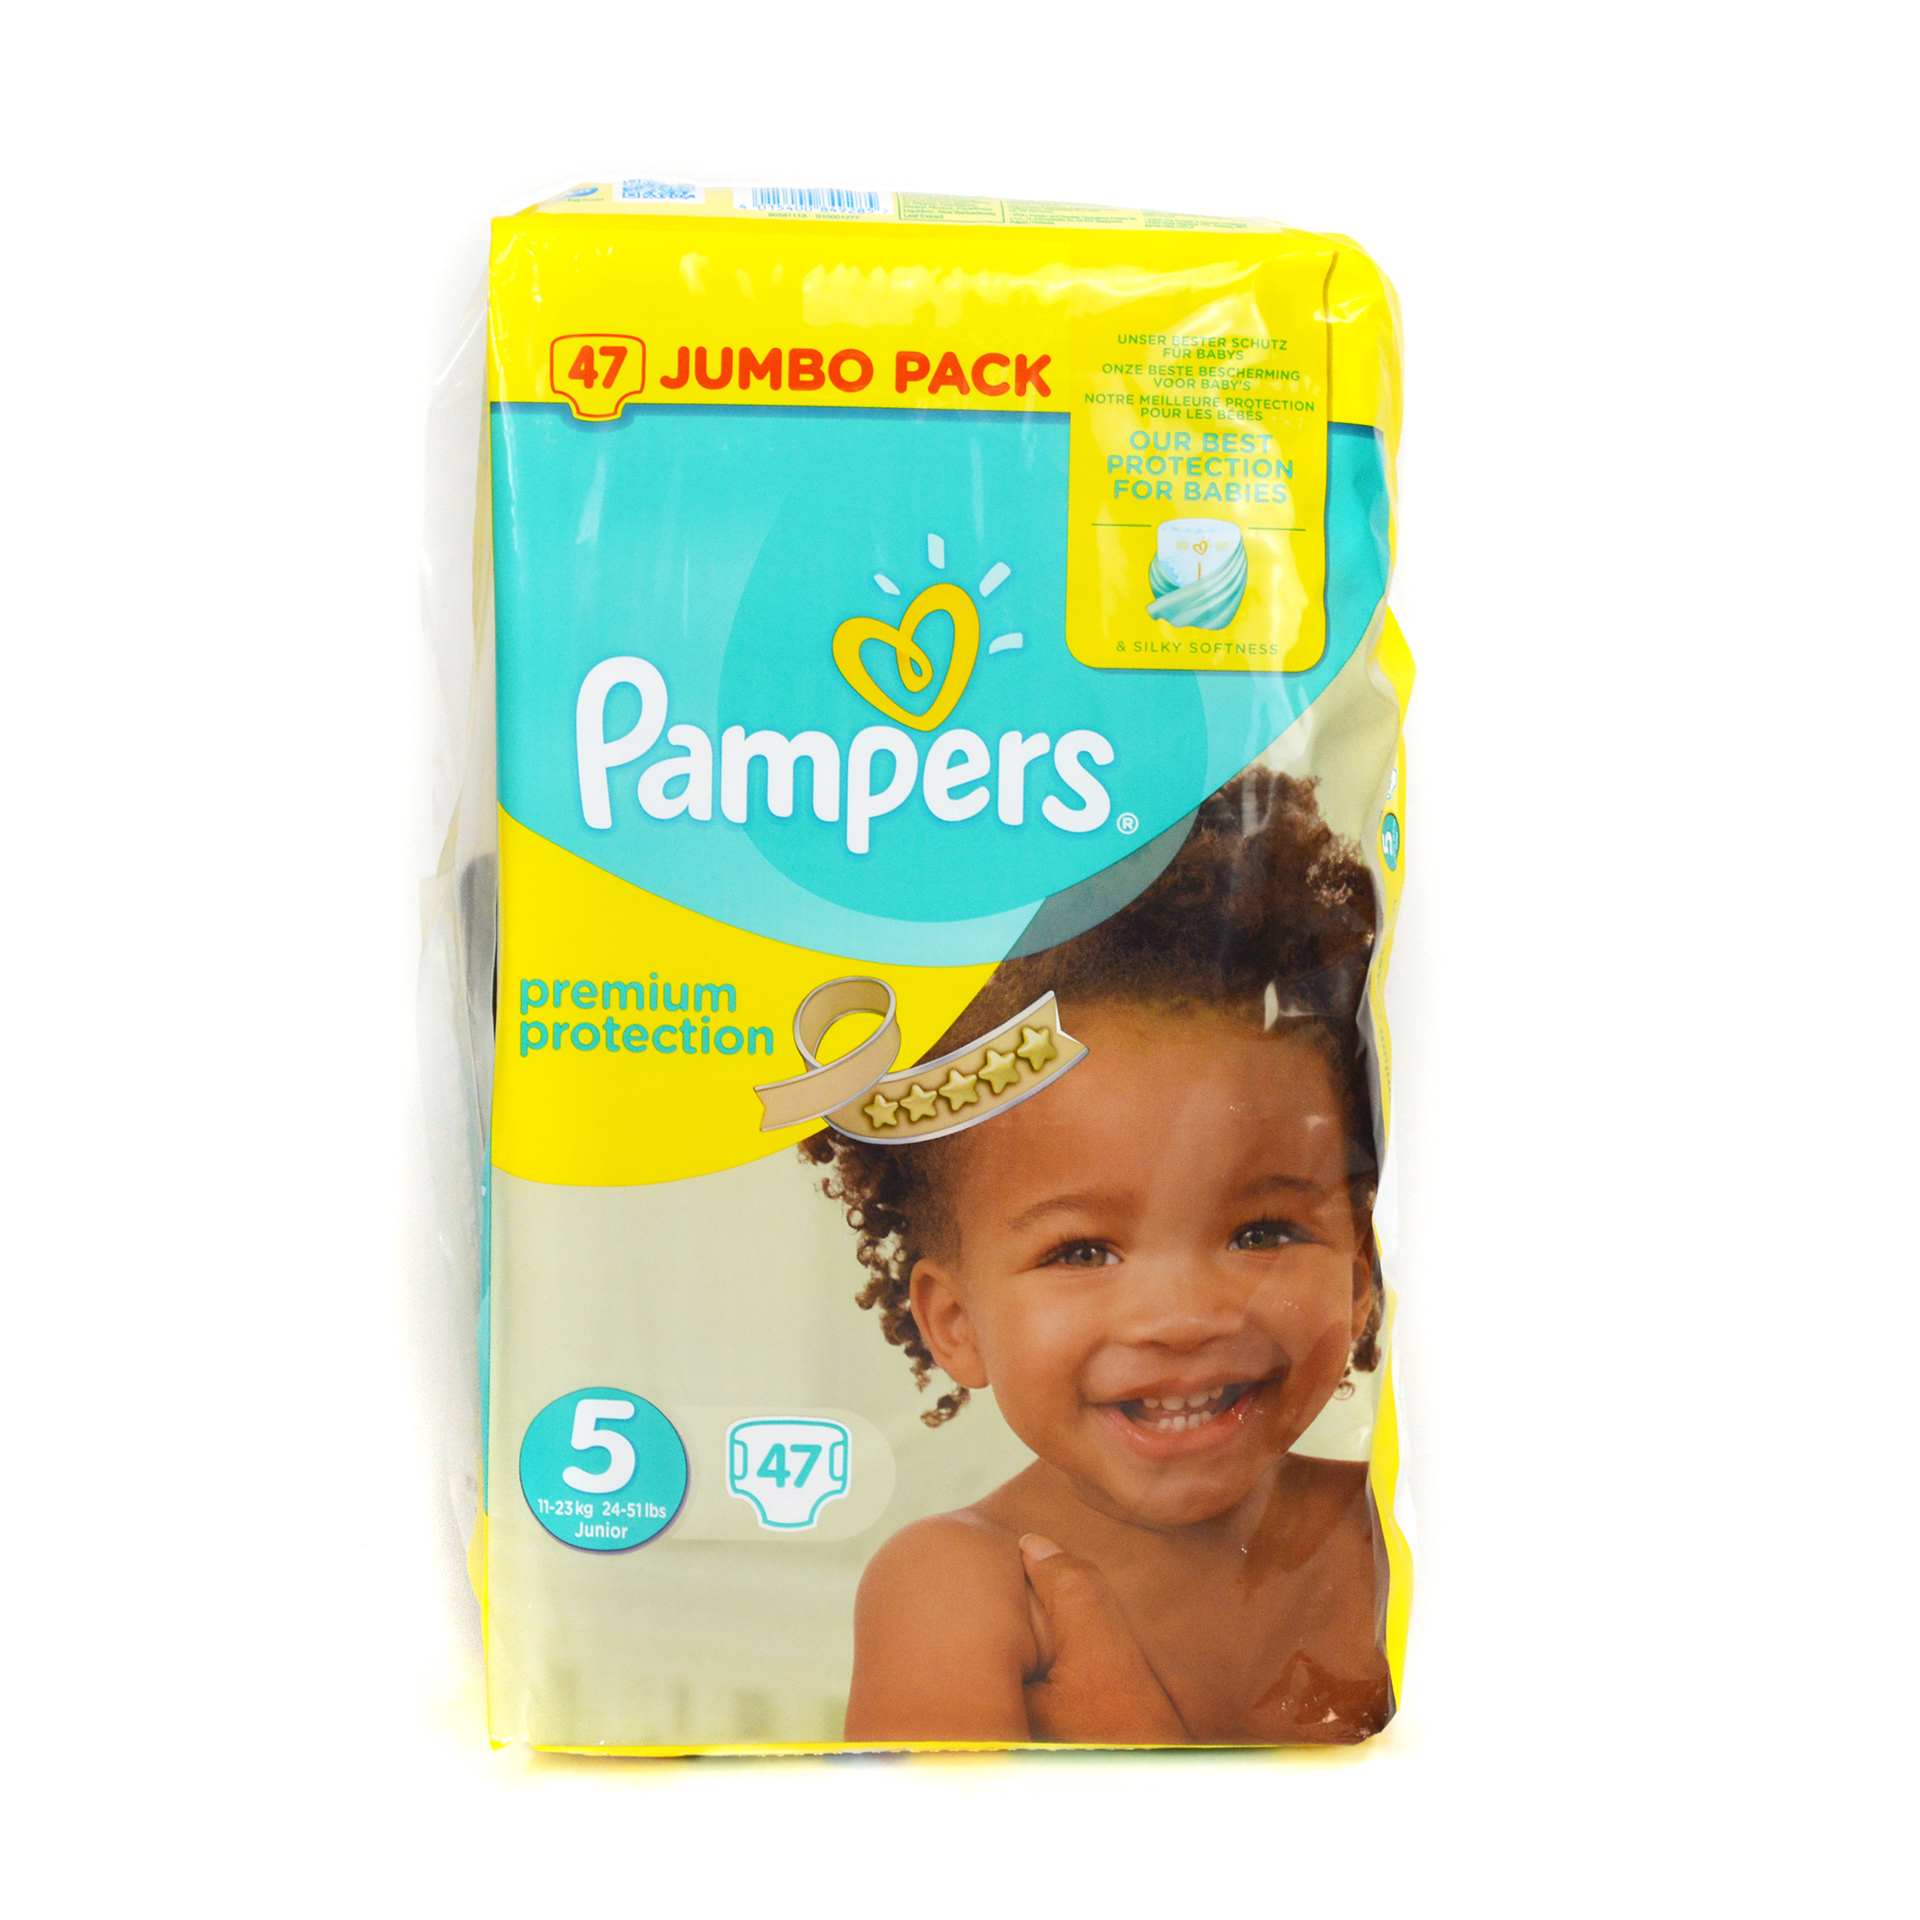 Pampers Premium Protection Nappies Jumbo Pack Size 5 Junior Buy